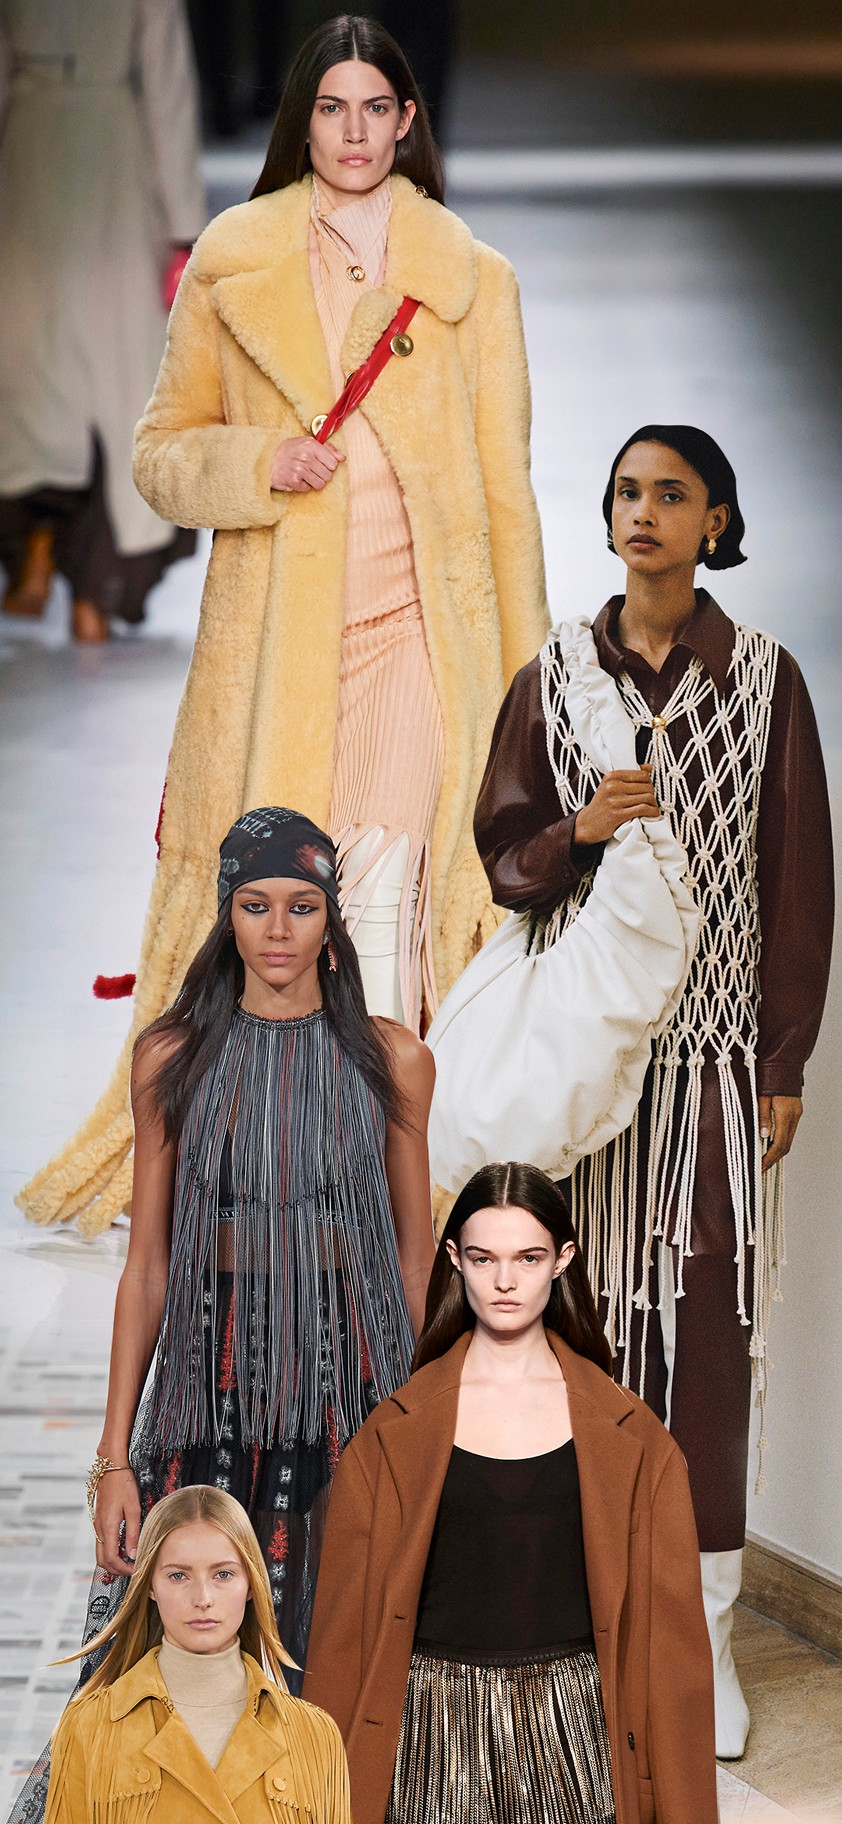 The Hottest And Most Coveted Fashion Trends From The Fall 2020 Runways (19) fashion trend The Hottest And Most Coveted Fashion Trends From The Fall 2020 Runways The Hottest And Most Coveted Fashion Trends From The Fall 2020 Runways 19